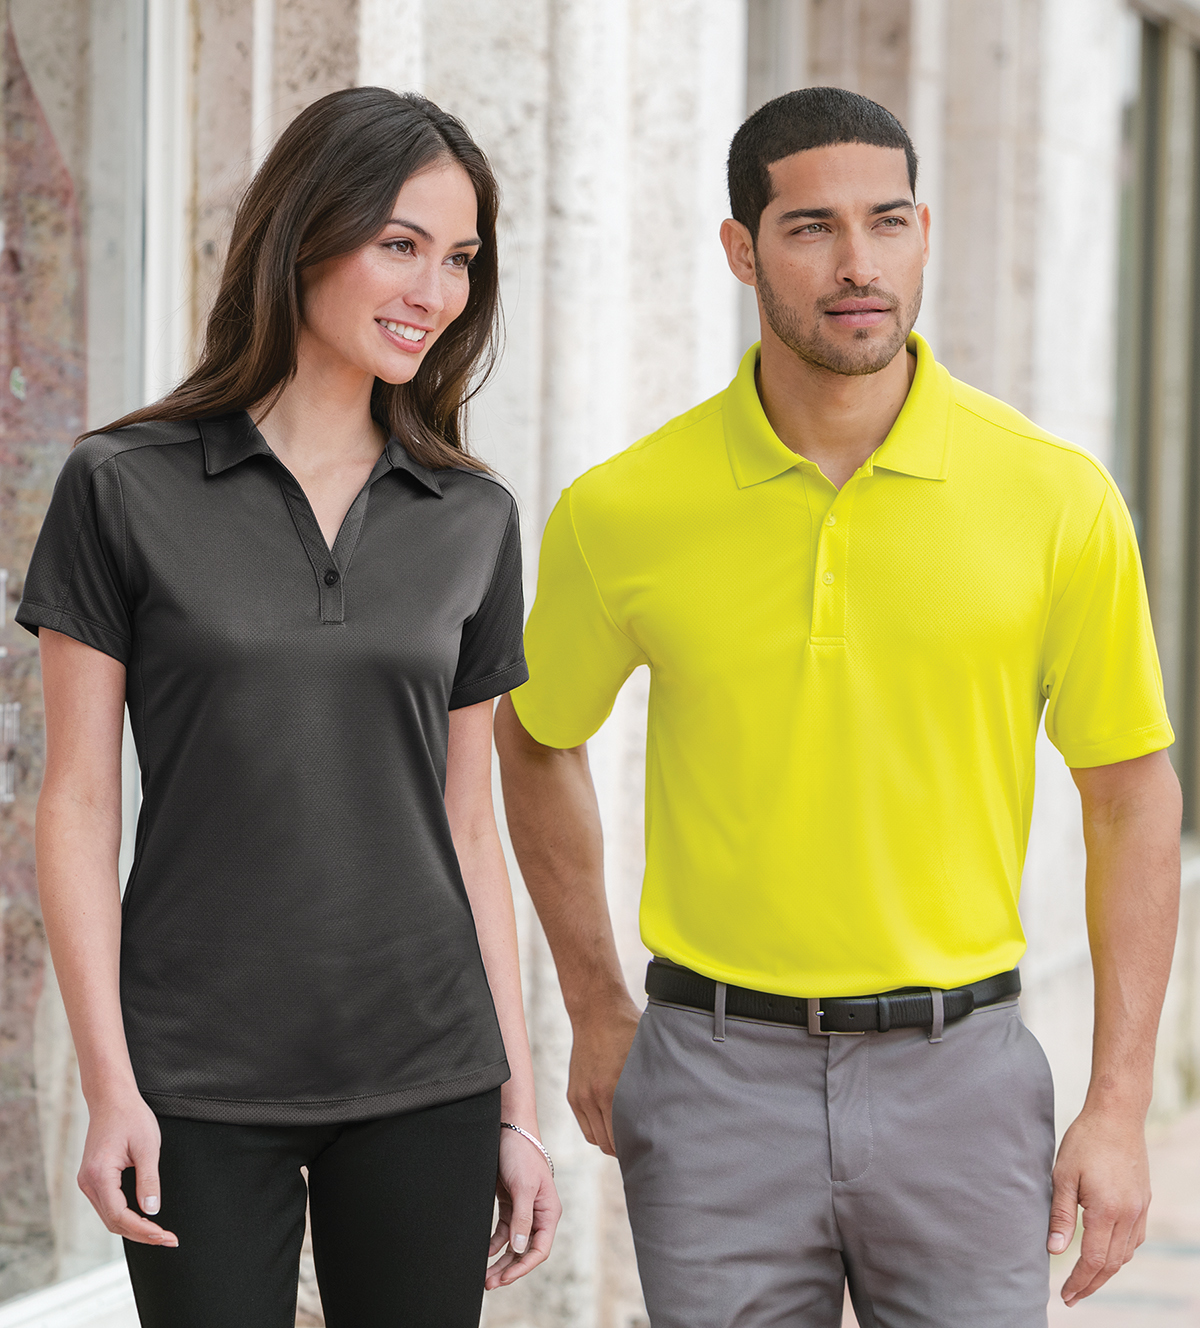 Graphite X-Large Port Authority Ladies Diamond Jacquard Polo